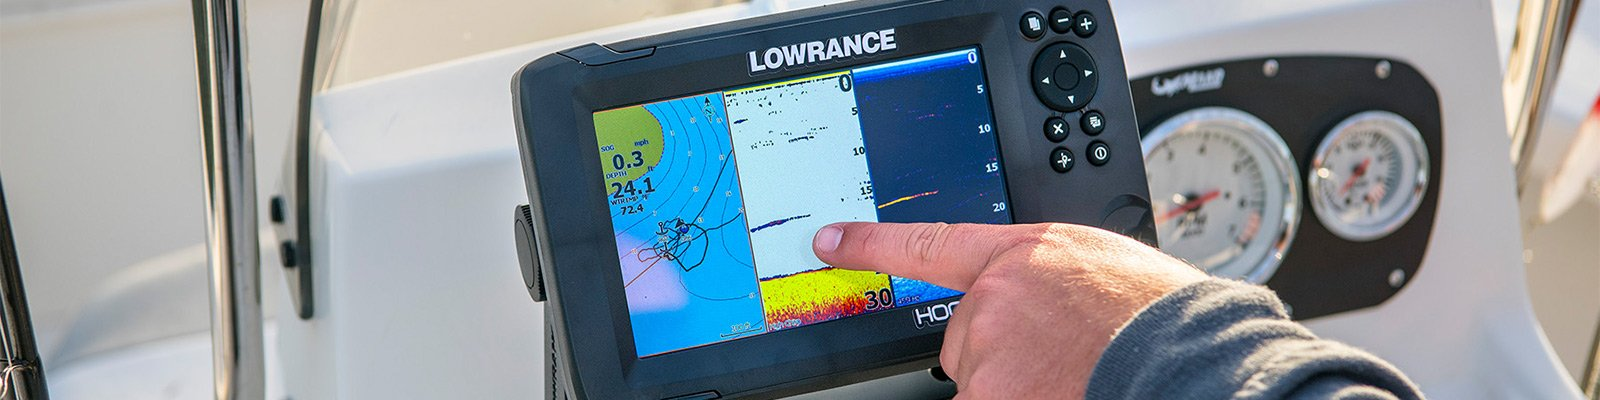 Lowrance HOOK Reveal Promo Image 6